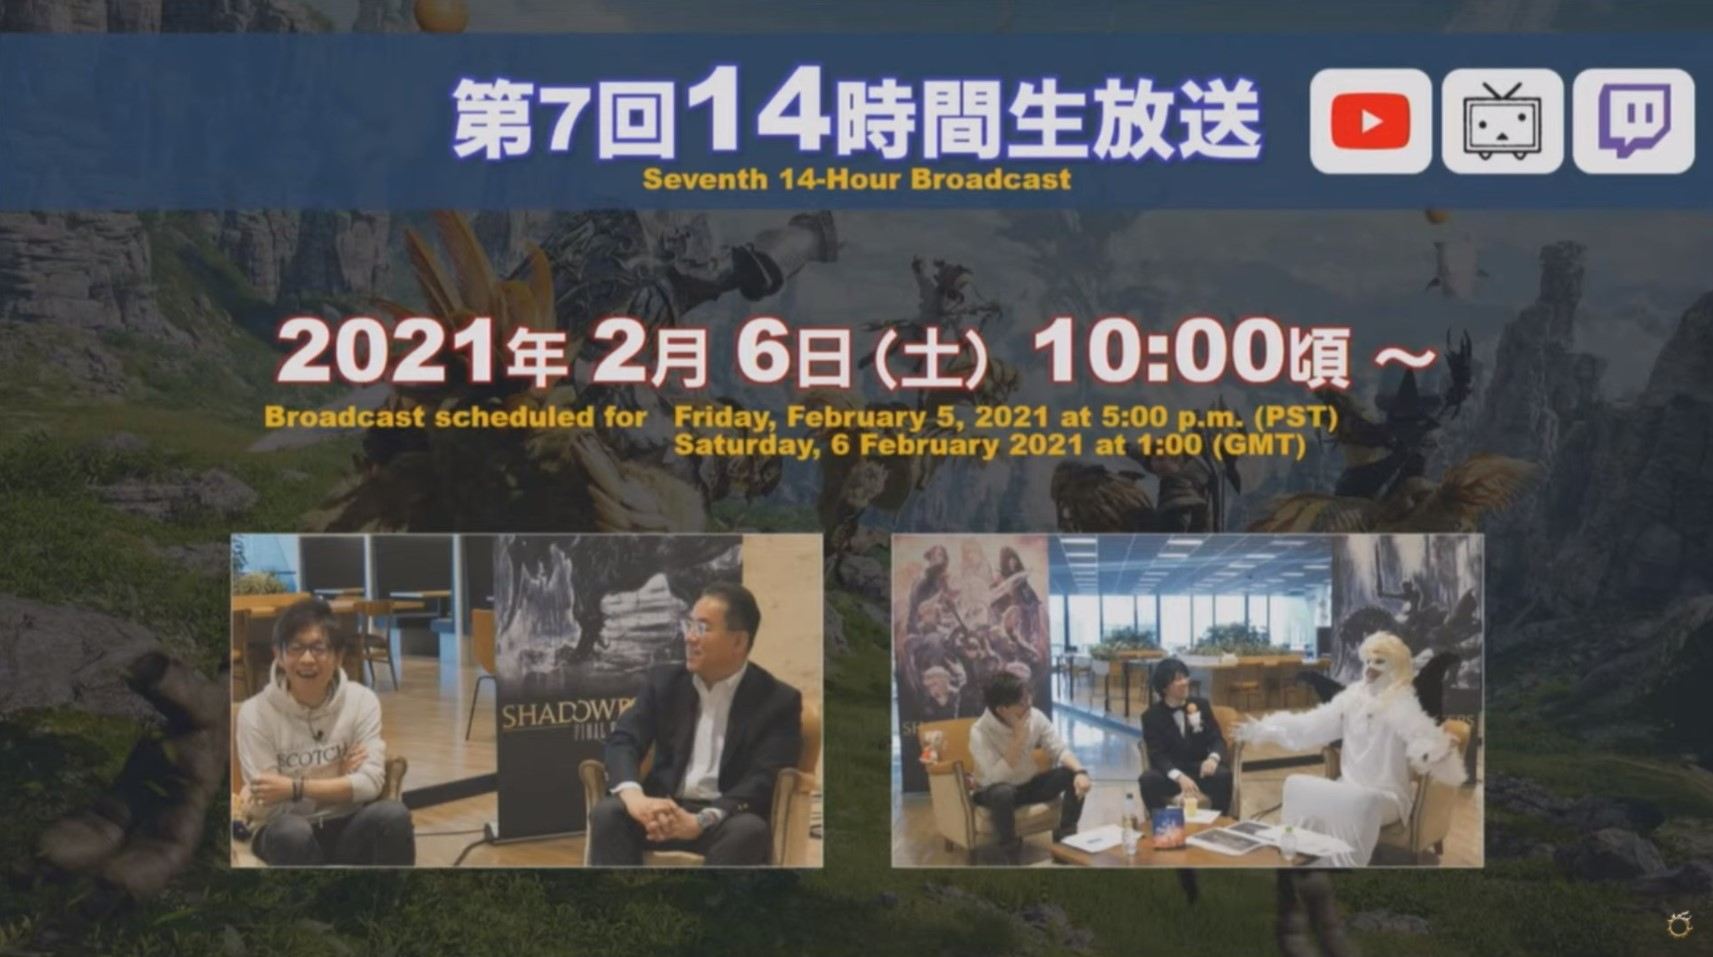 FFXIV 7th 14 Hour Broadcast